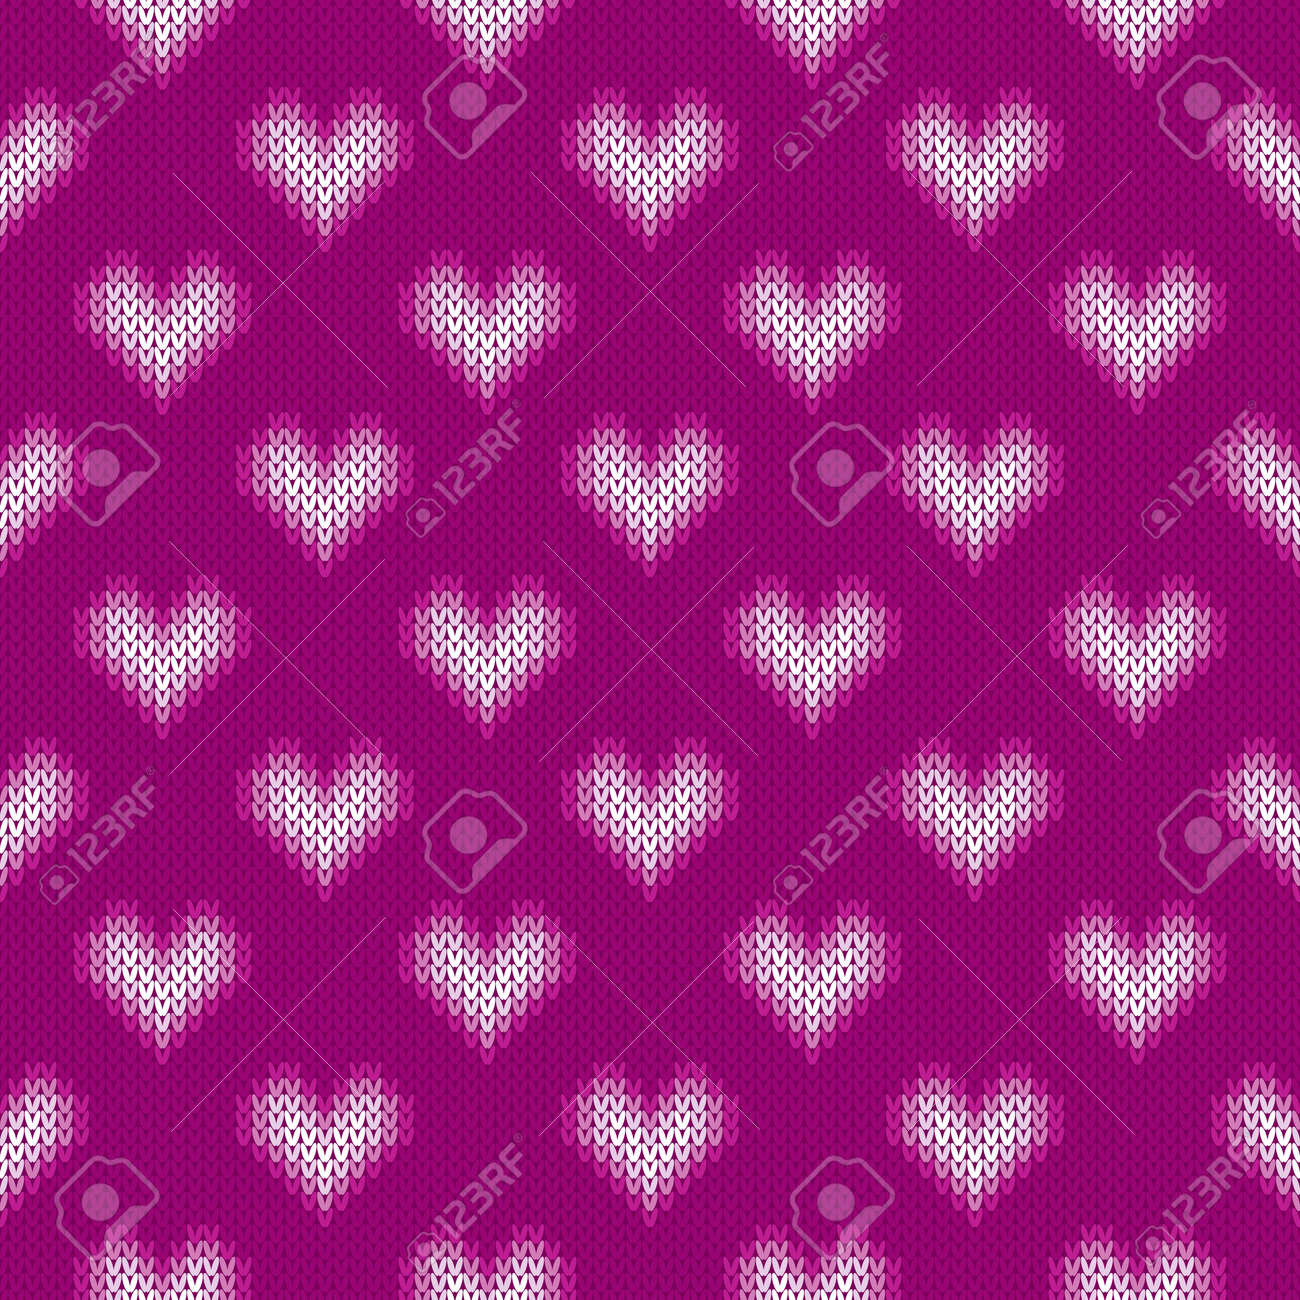 14 February Knitted Pattern With Hearts. St Valentine\'s Day Seamless ...